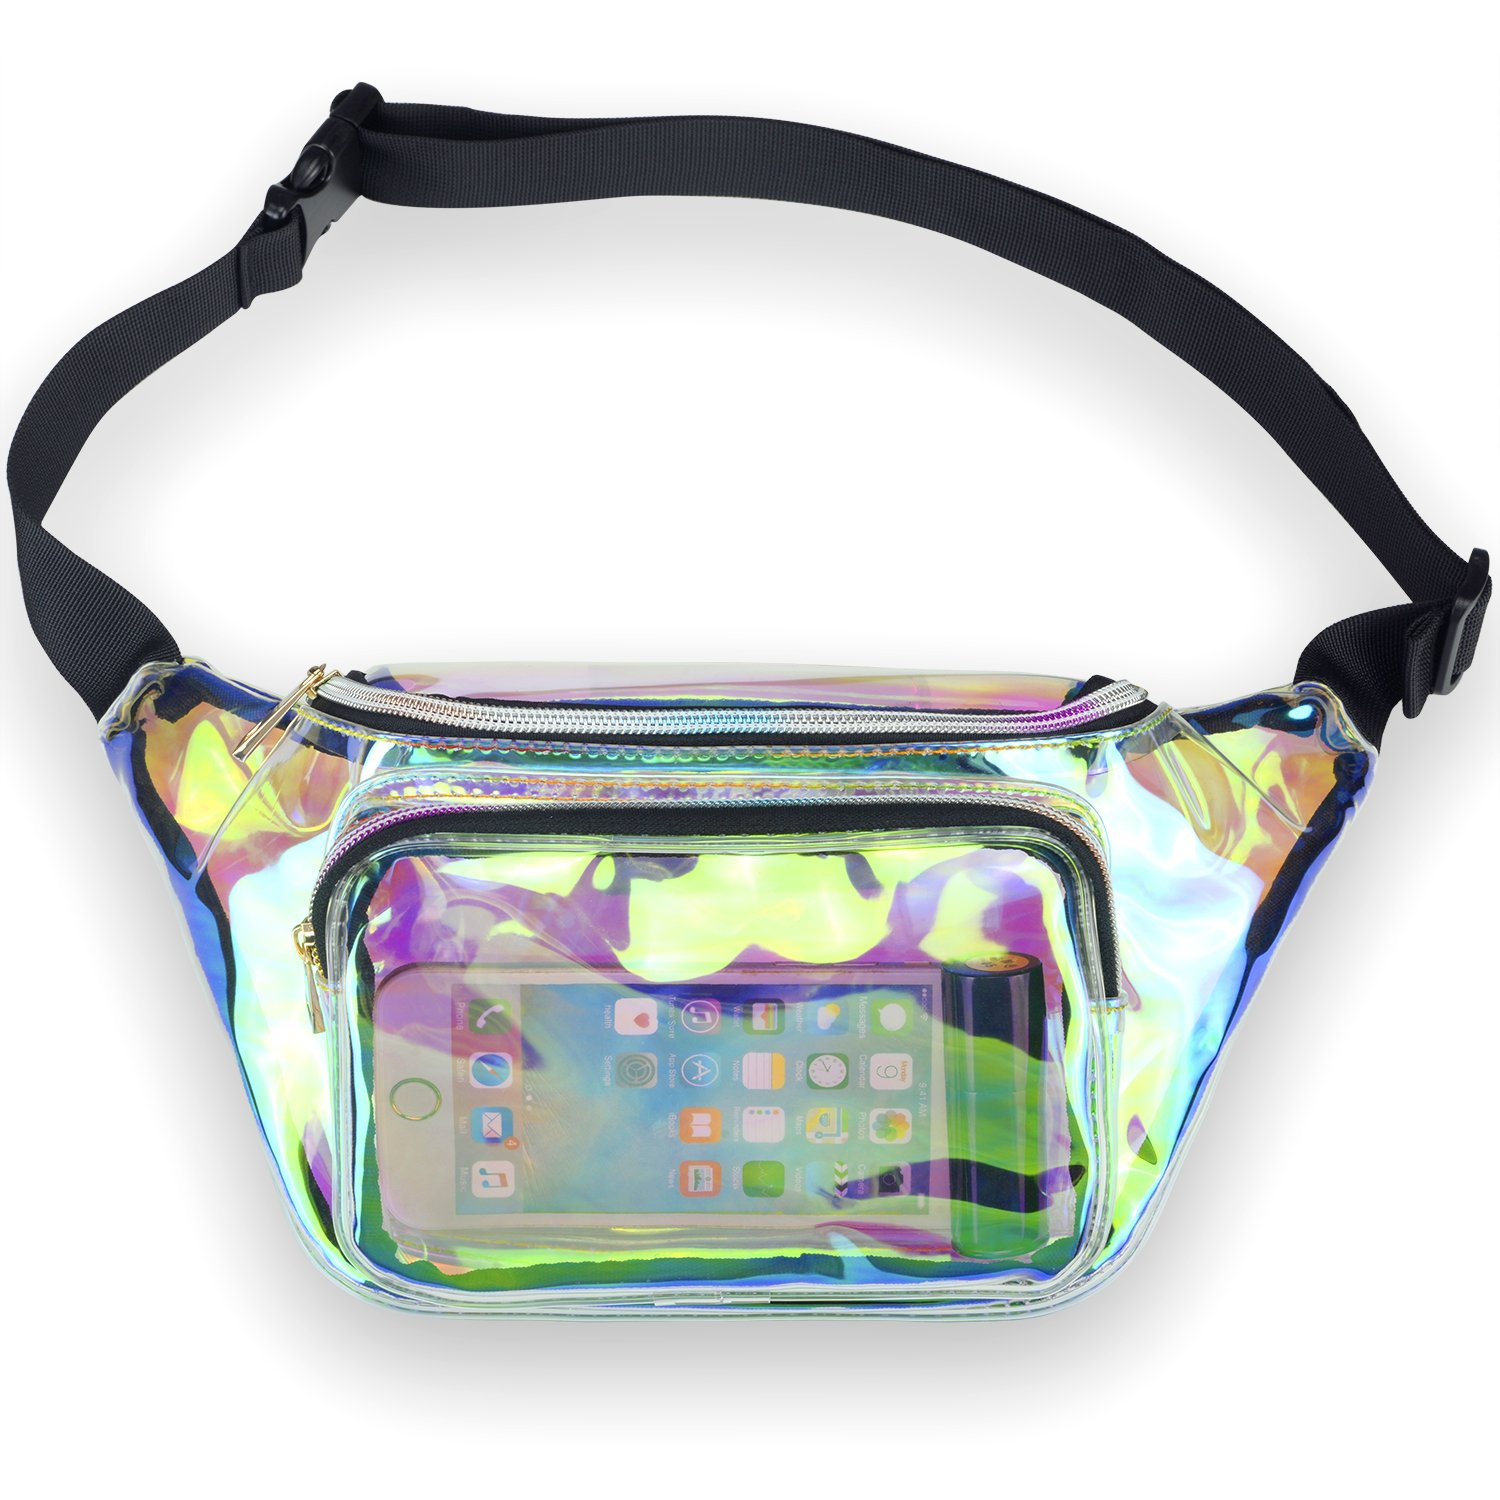 LEADO Holographic Fanny Pack for Women, Fashion Waist Pack for Rave, Festival, Party (Clear)